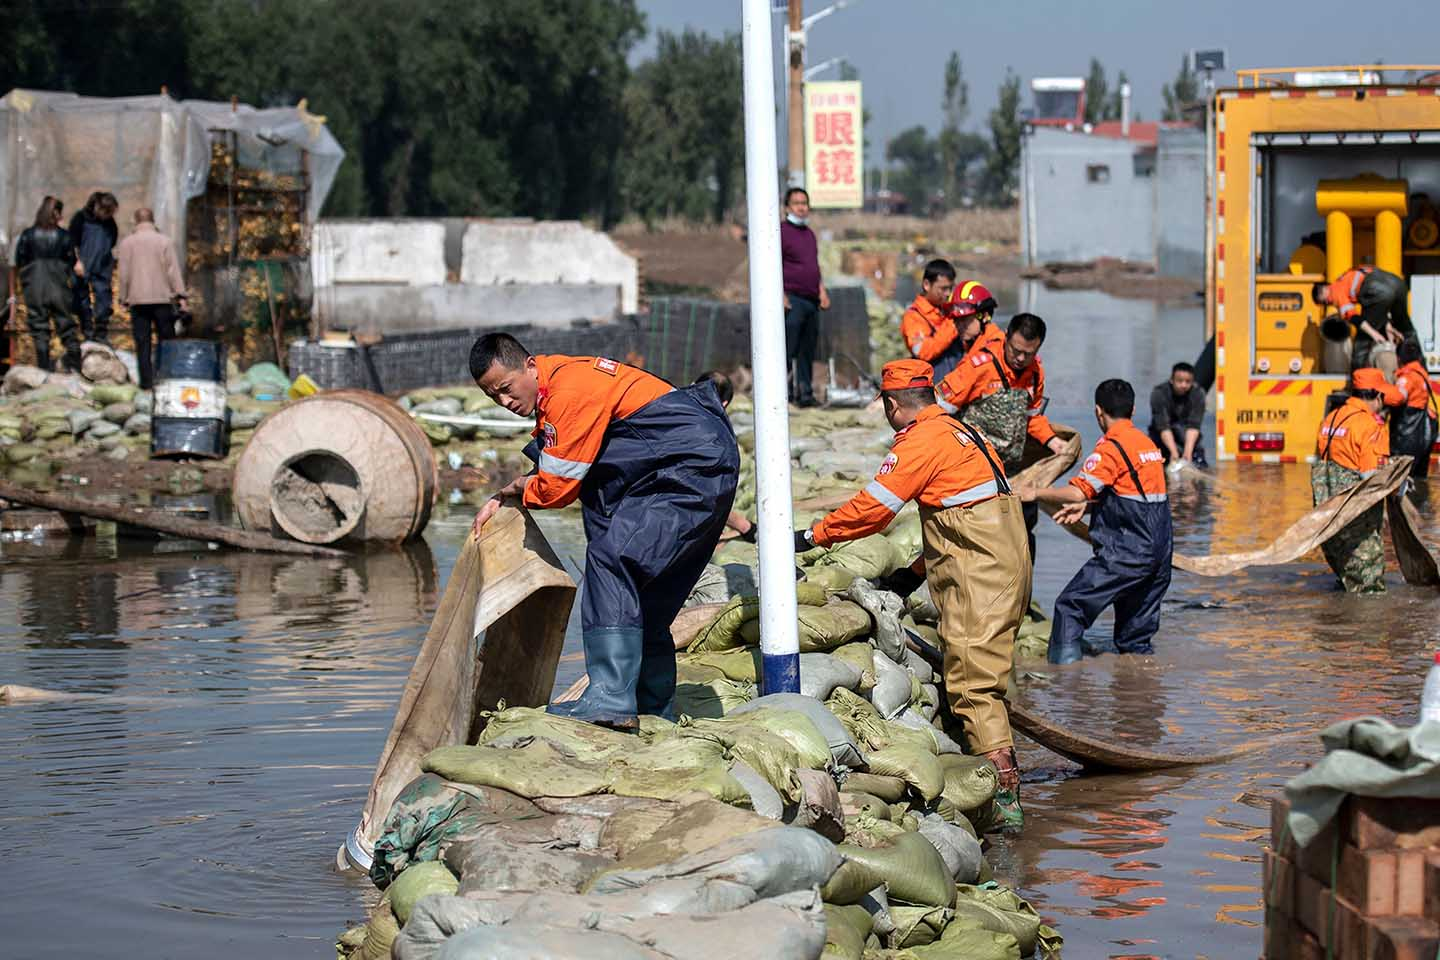 China's Biggest Coal-Producing Region Was Hit by Floods at the Worst Possible Time